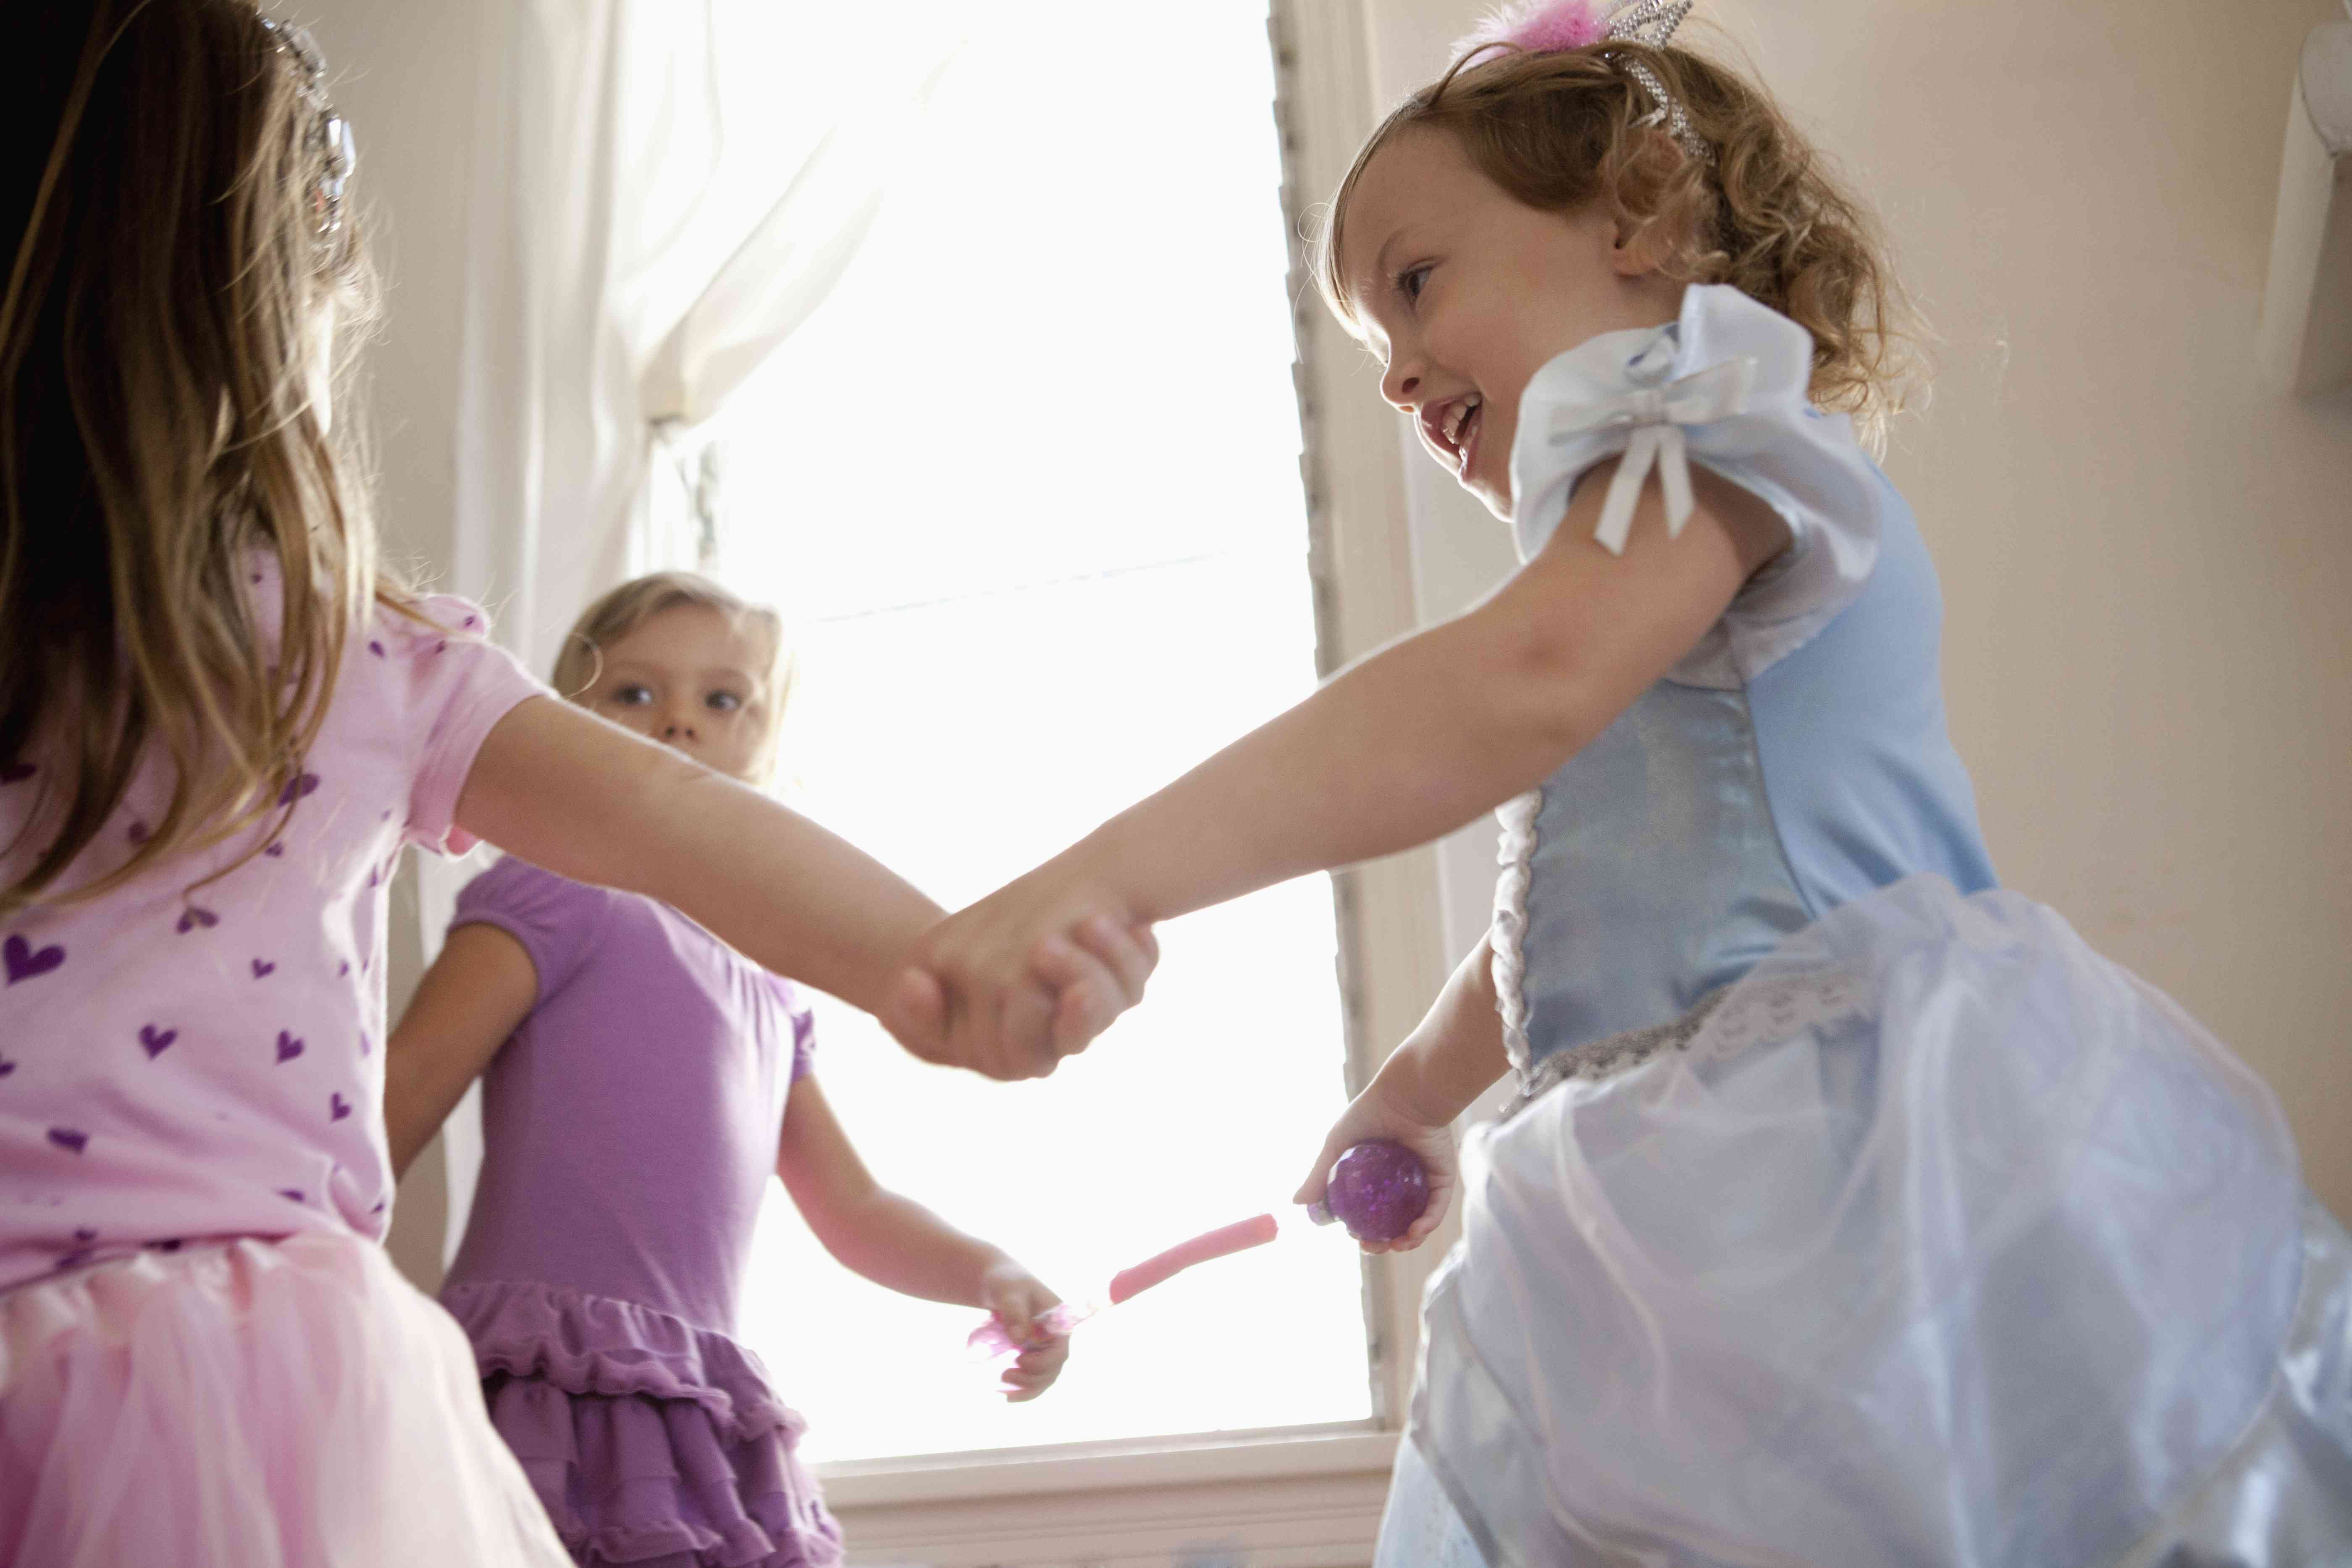 Three young girls in party dress holding hands and dancing